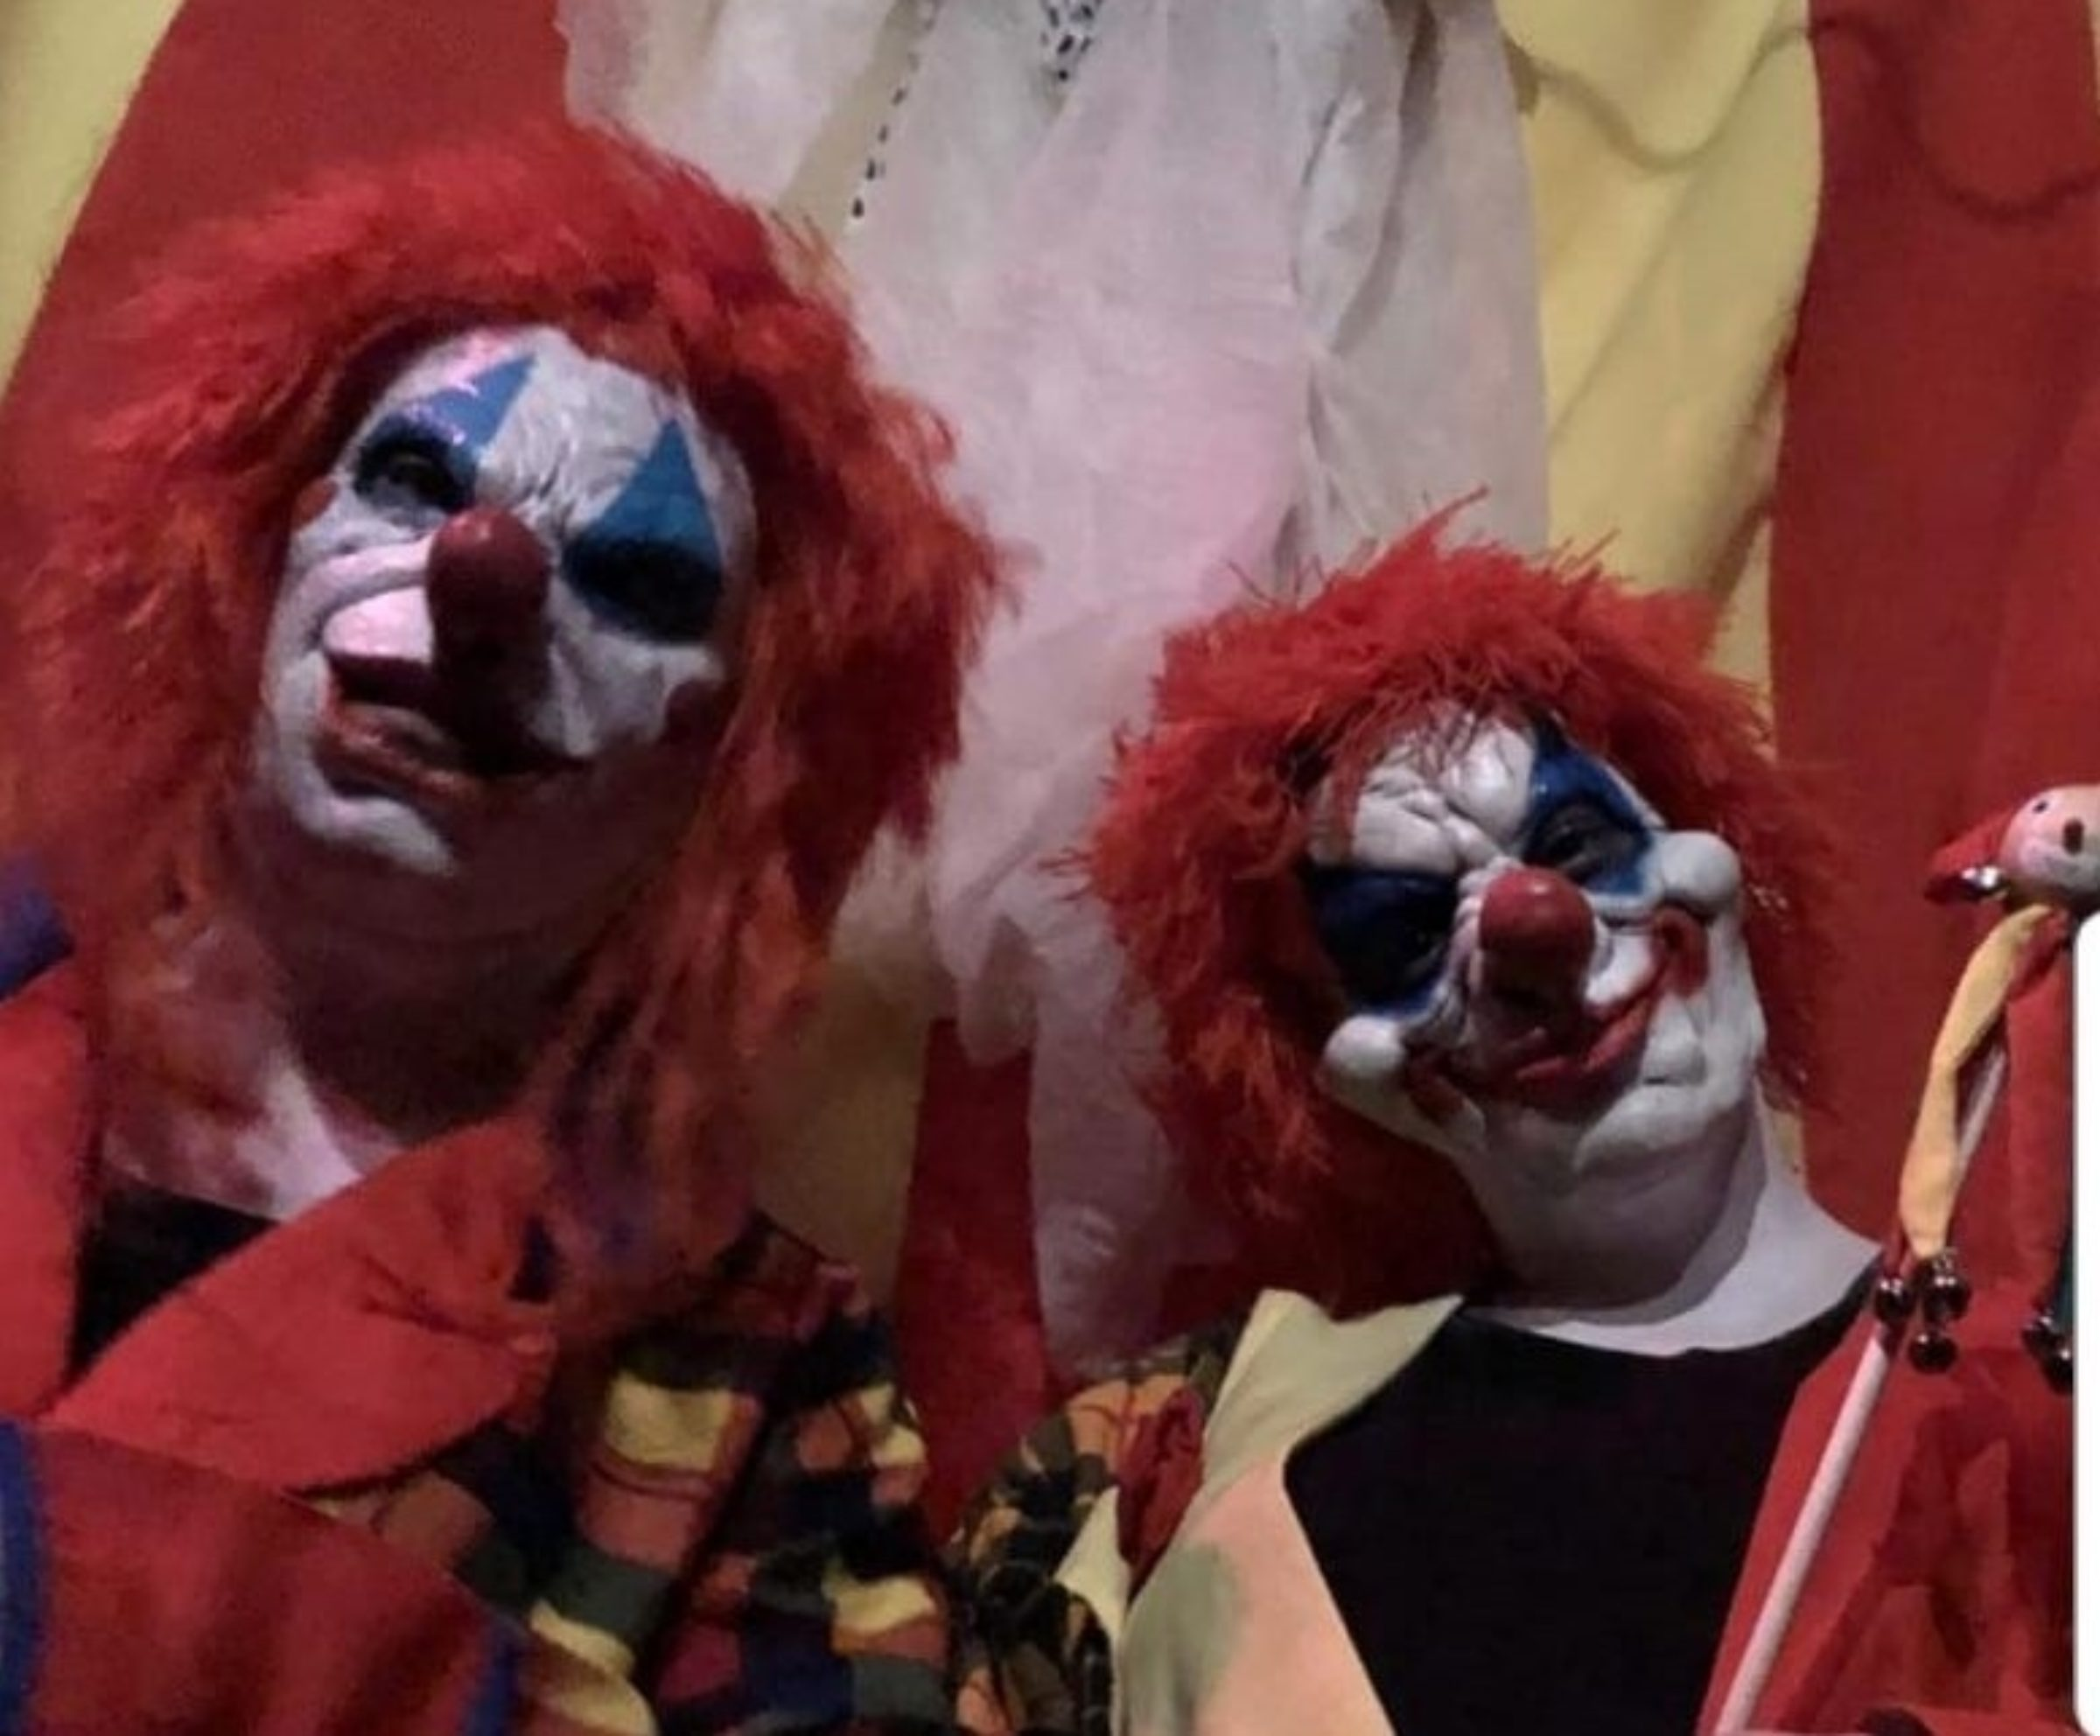 Clowns 1630 1540808602 35ht4twjyd